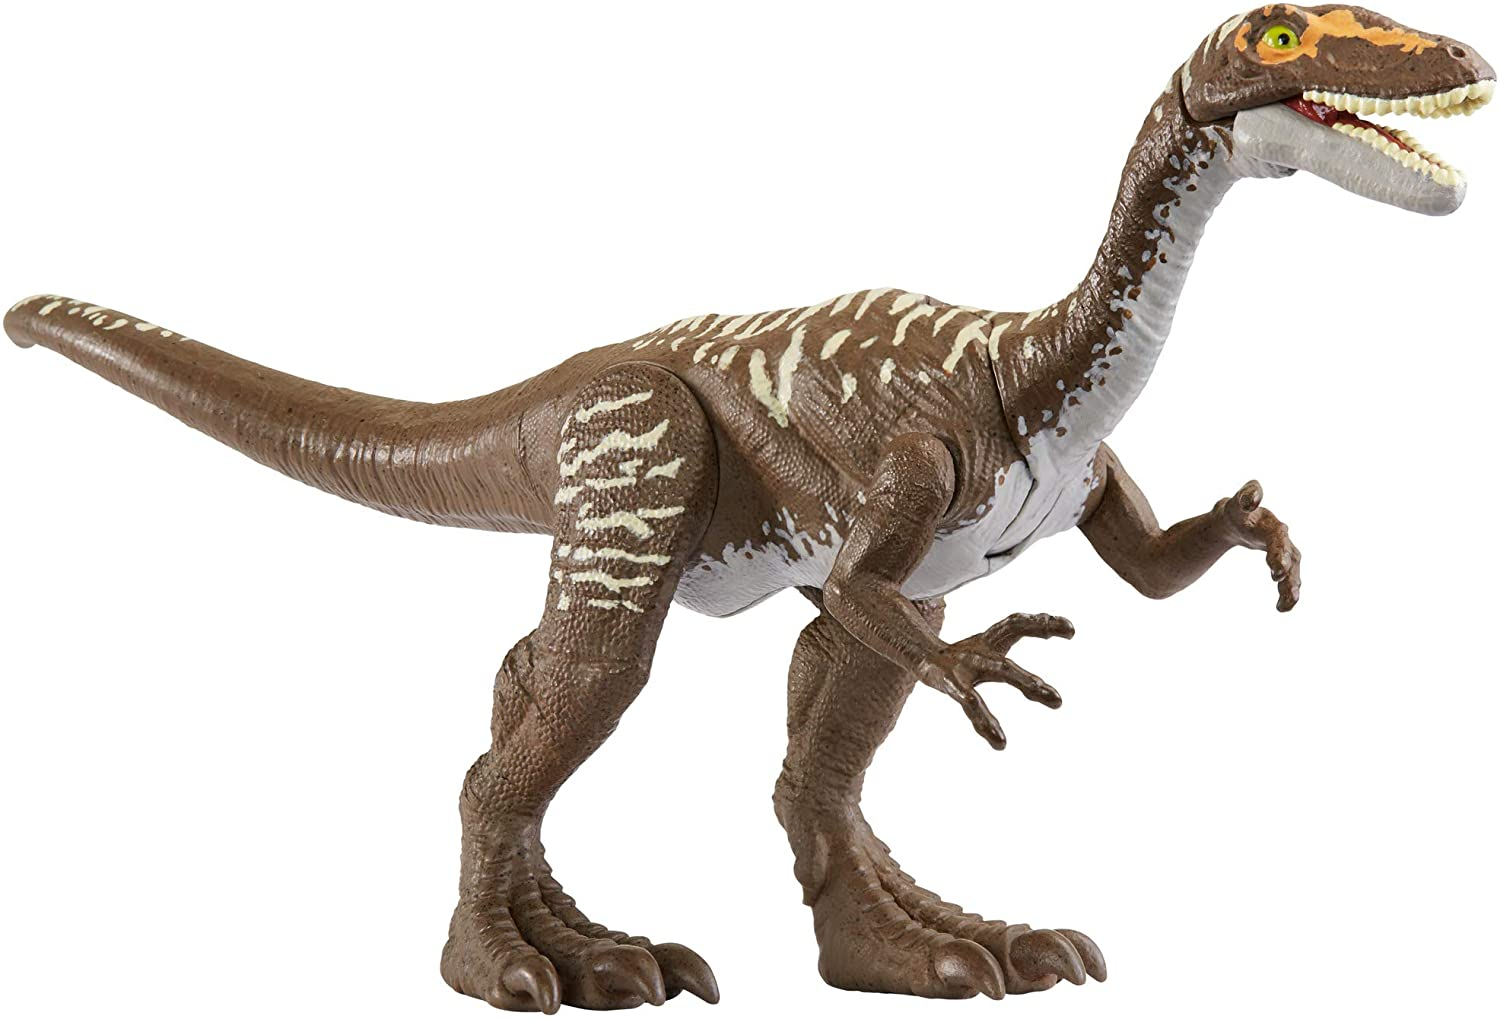 Jurassic World Dinosaur Attack Pack Ornitholestes